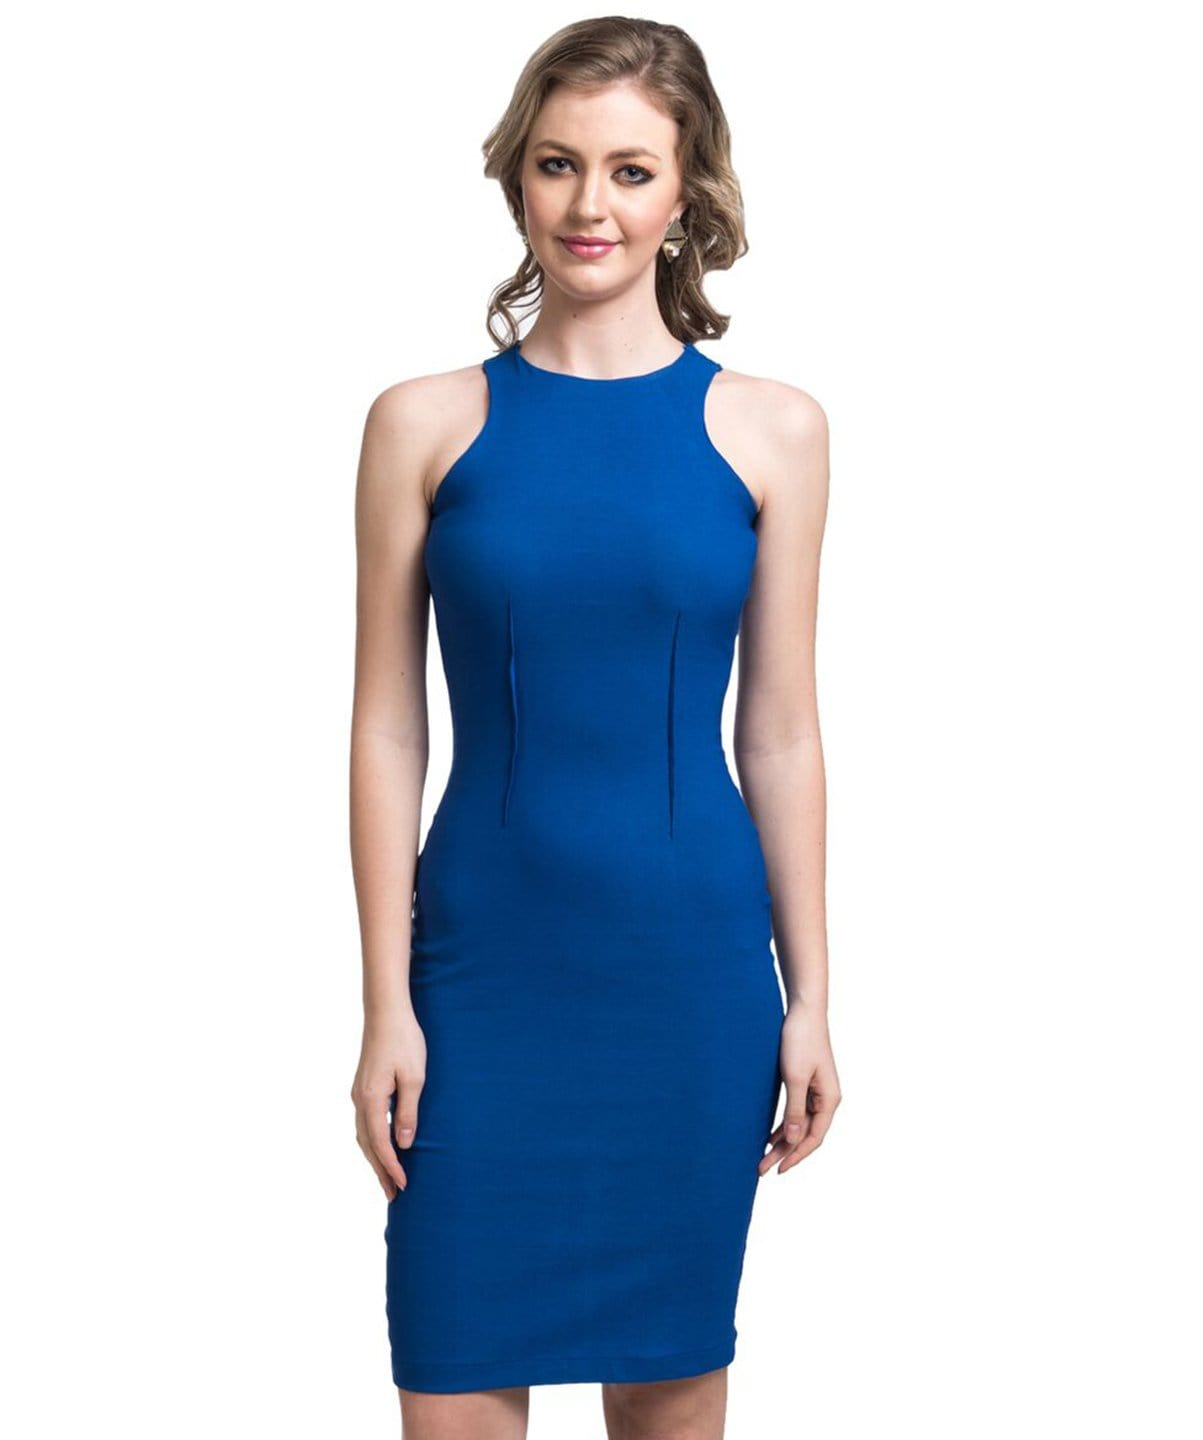 Solid Blue Bodycon Dress - Uptownie